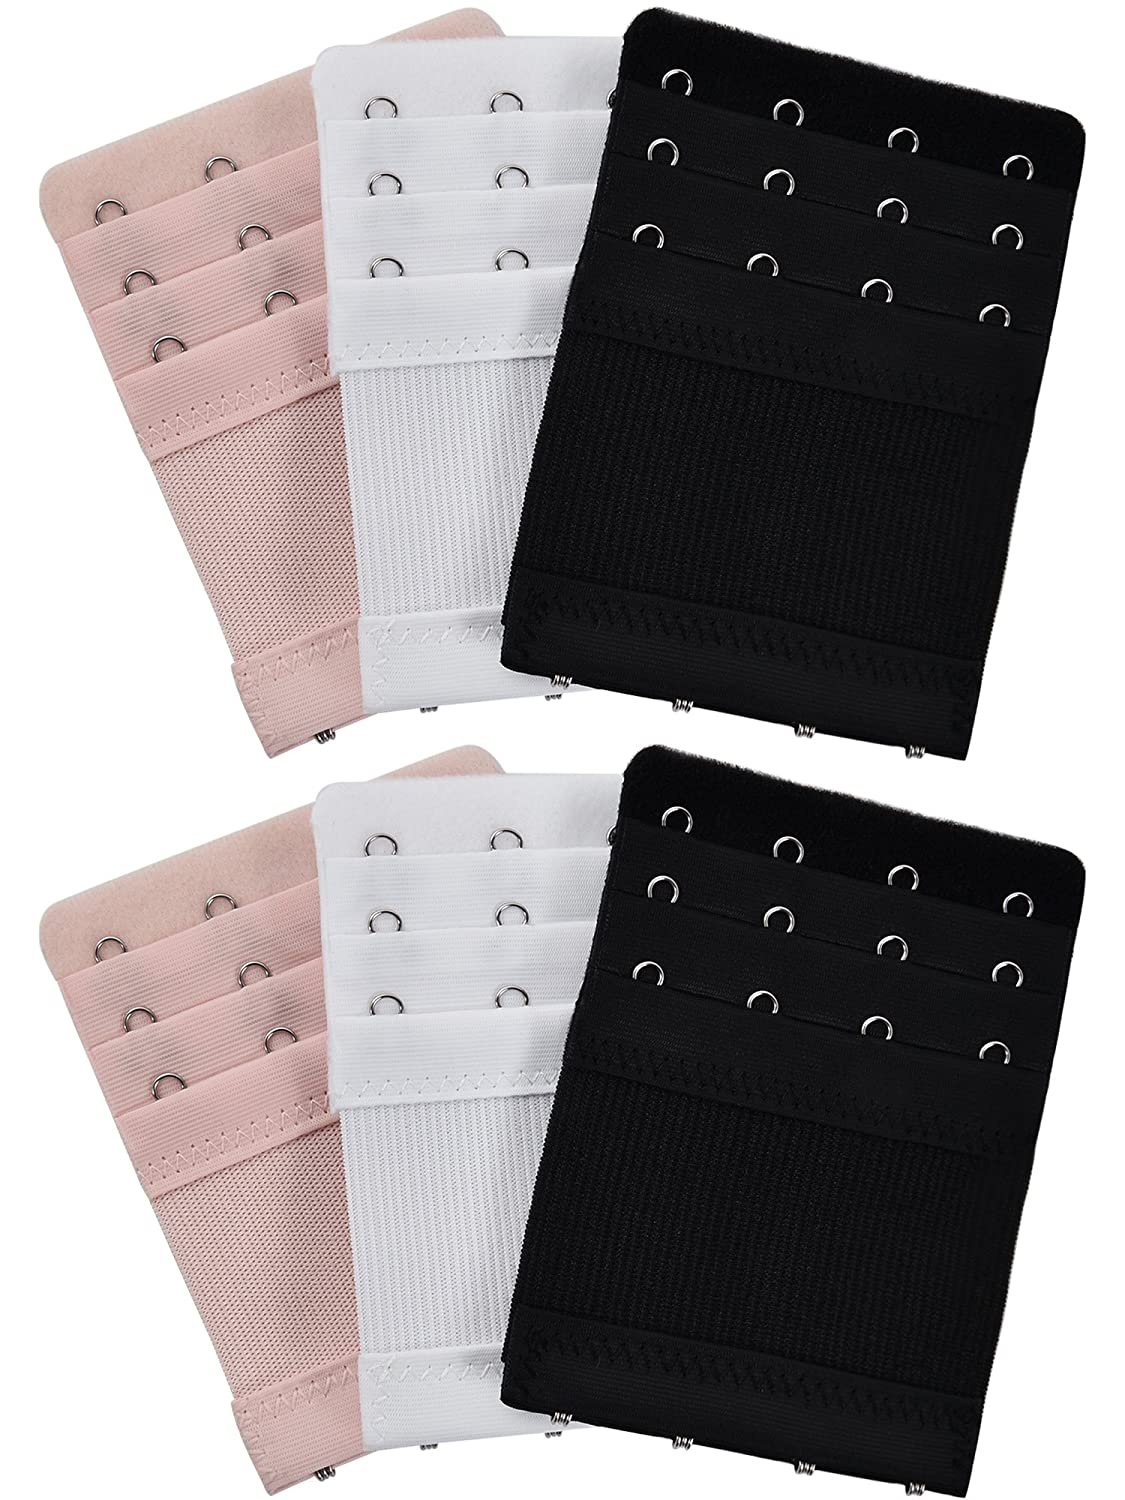 3 Colors 3 Rows x 4 Hooks 6 Pieces Womens Bra Extenders Elastic Stretchy Bra Extension Strap